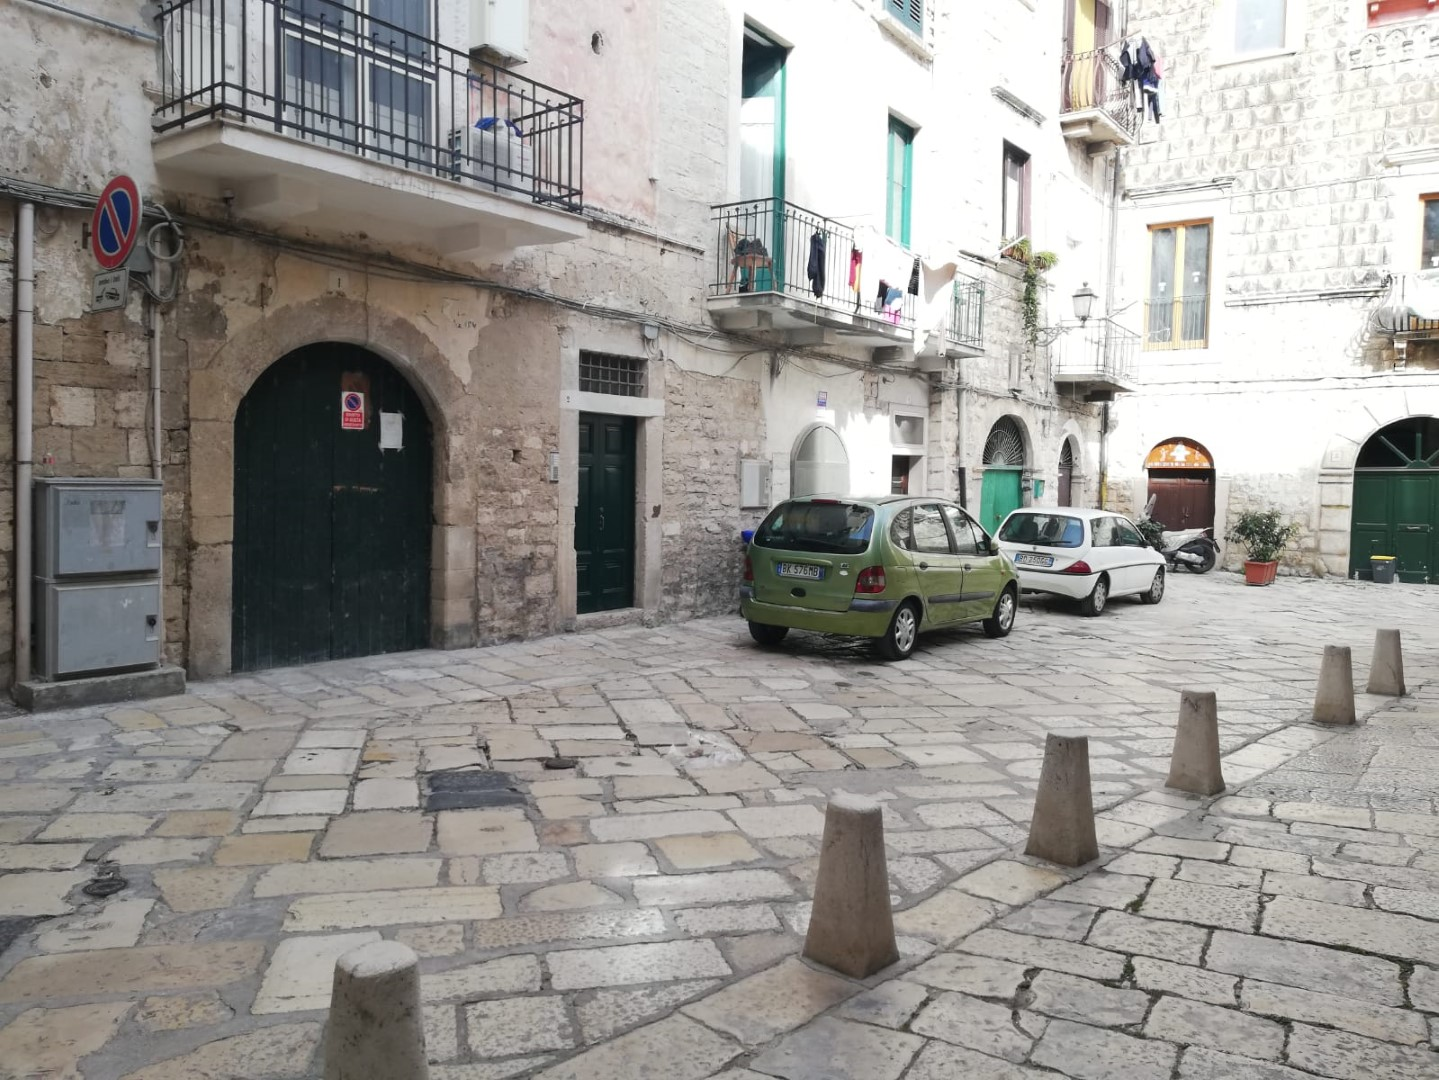 ID467-Locale commerciale in Affitto